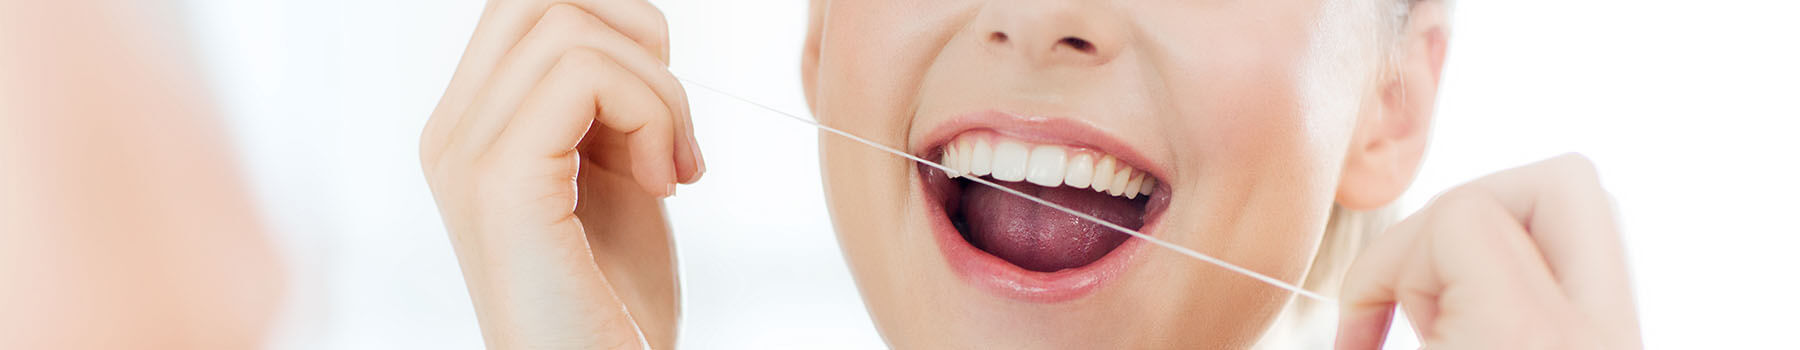 Periodontics (Gum Disease Treatment)